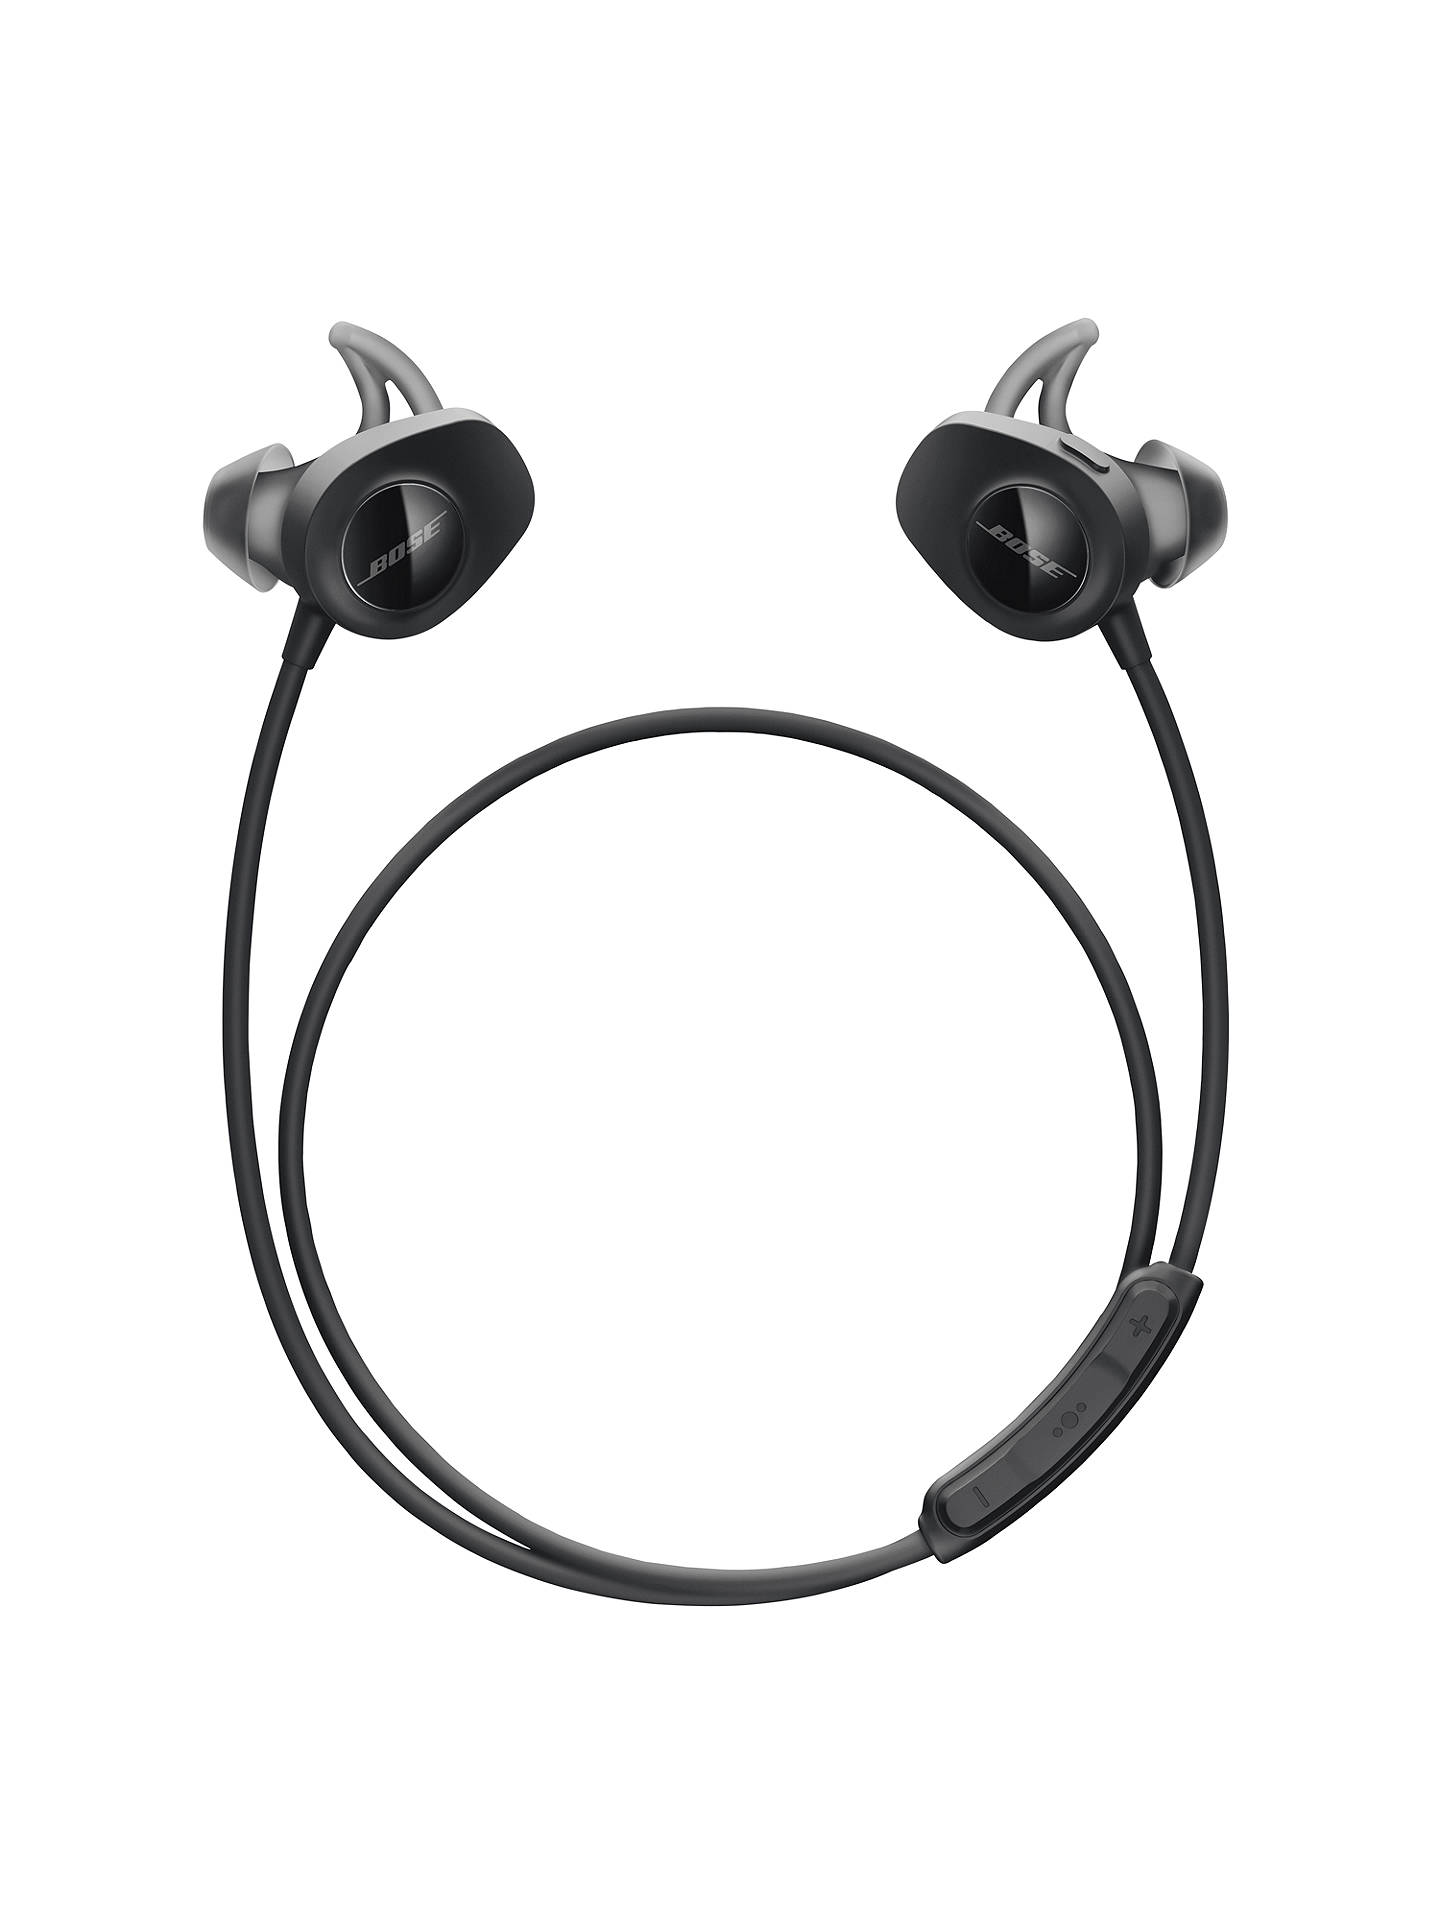 BuyBose® SoundSport™ Sweat & Weather-Resistant Wireless In-Ear Headphones With Bluetooth/NFC, 3-Button In-Line Remote and Carry Case, Black Online at johnlewis.com